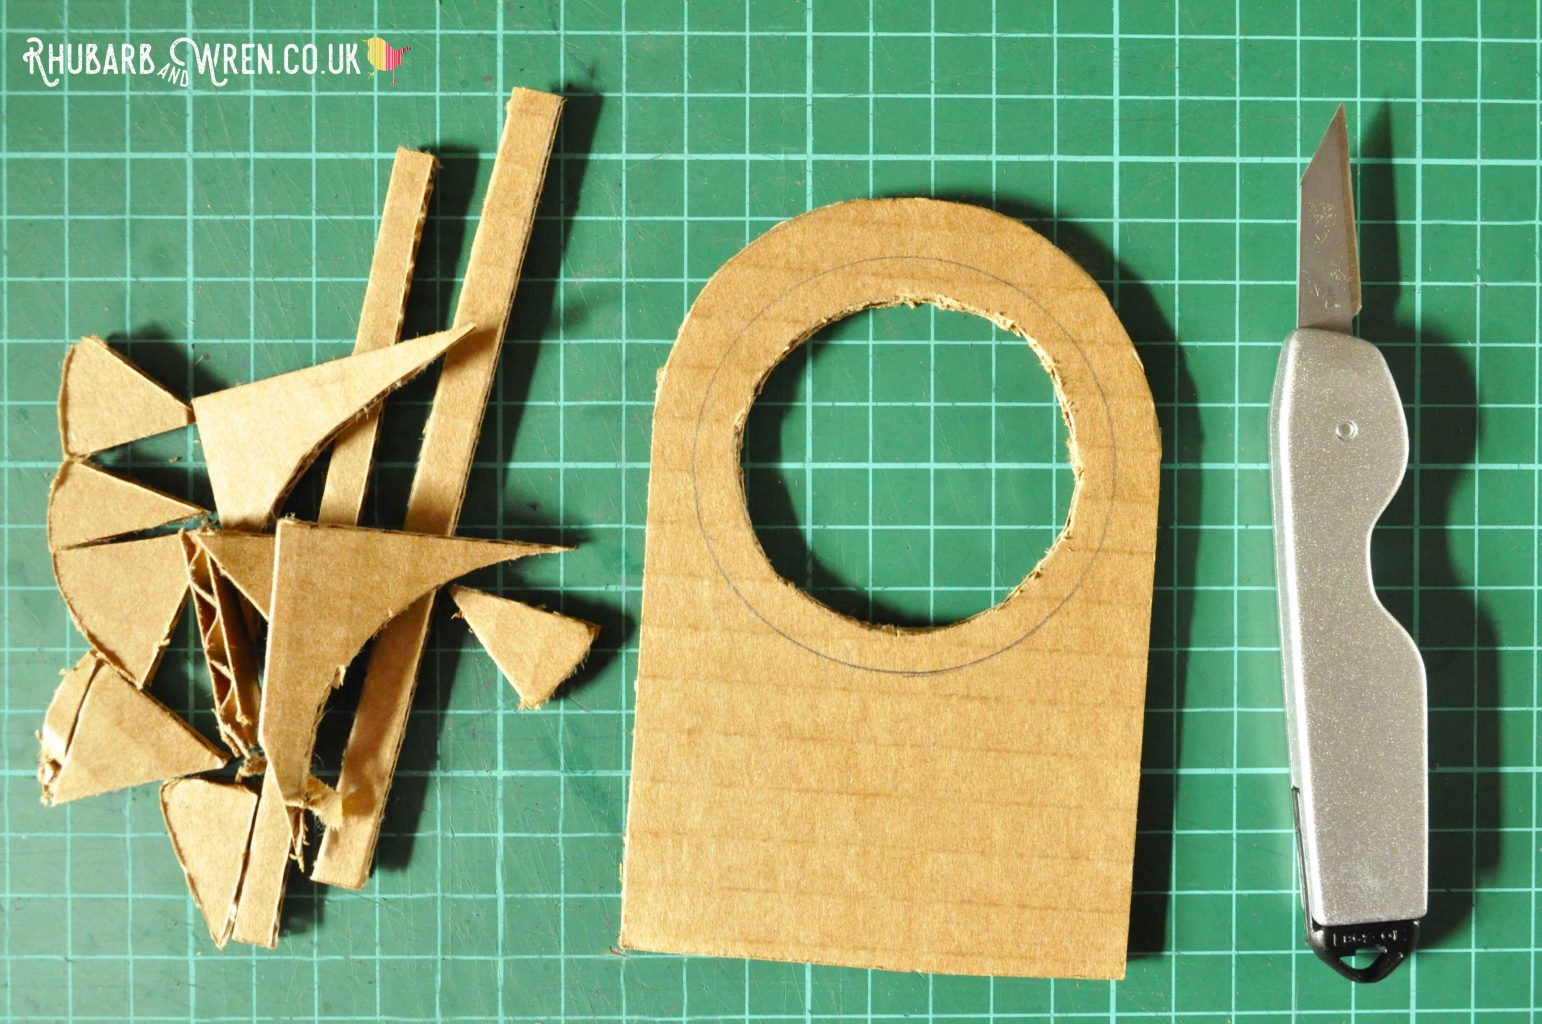 Making a real magnifying glass from cardboard